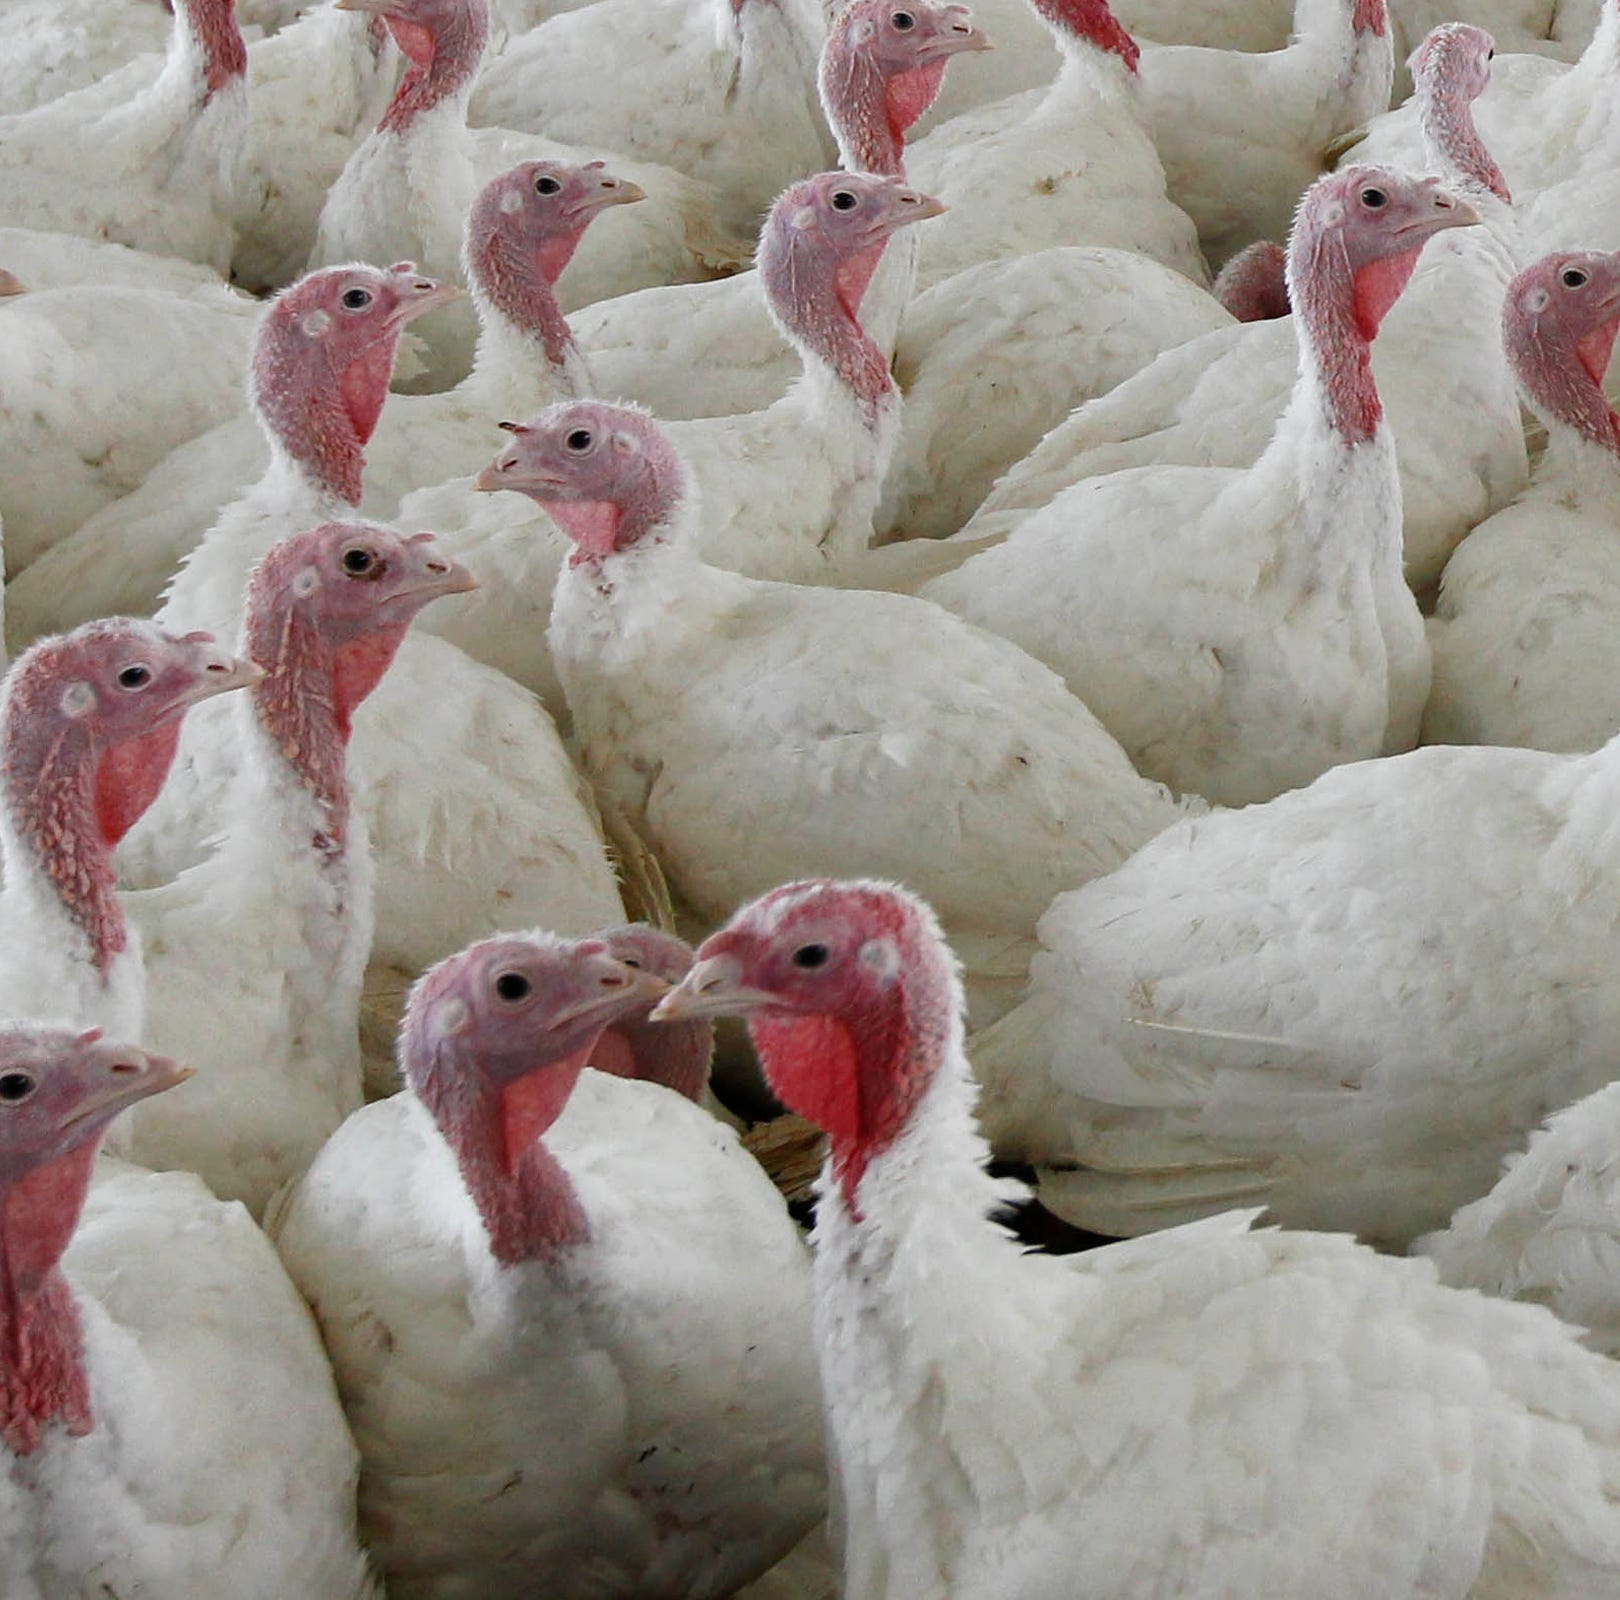 Salmonella found in turkey: What this means for your Thanksgiving